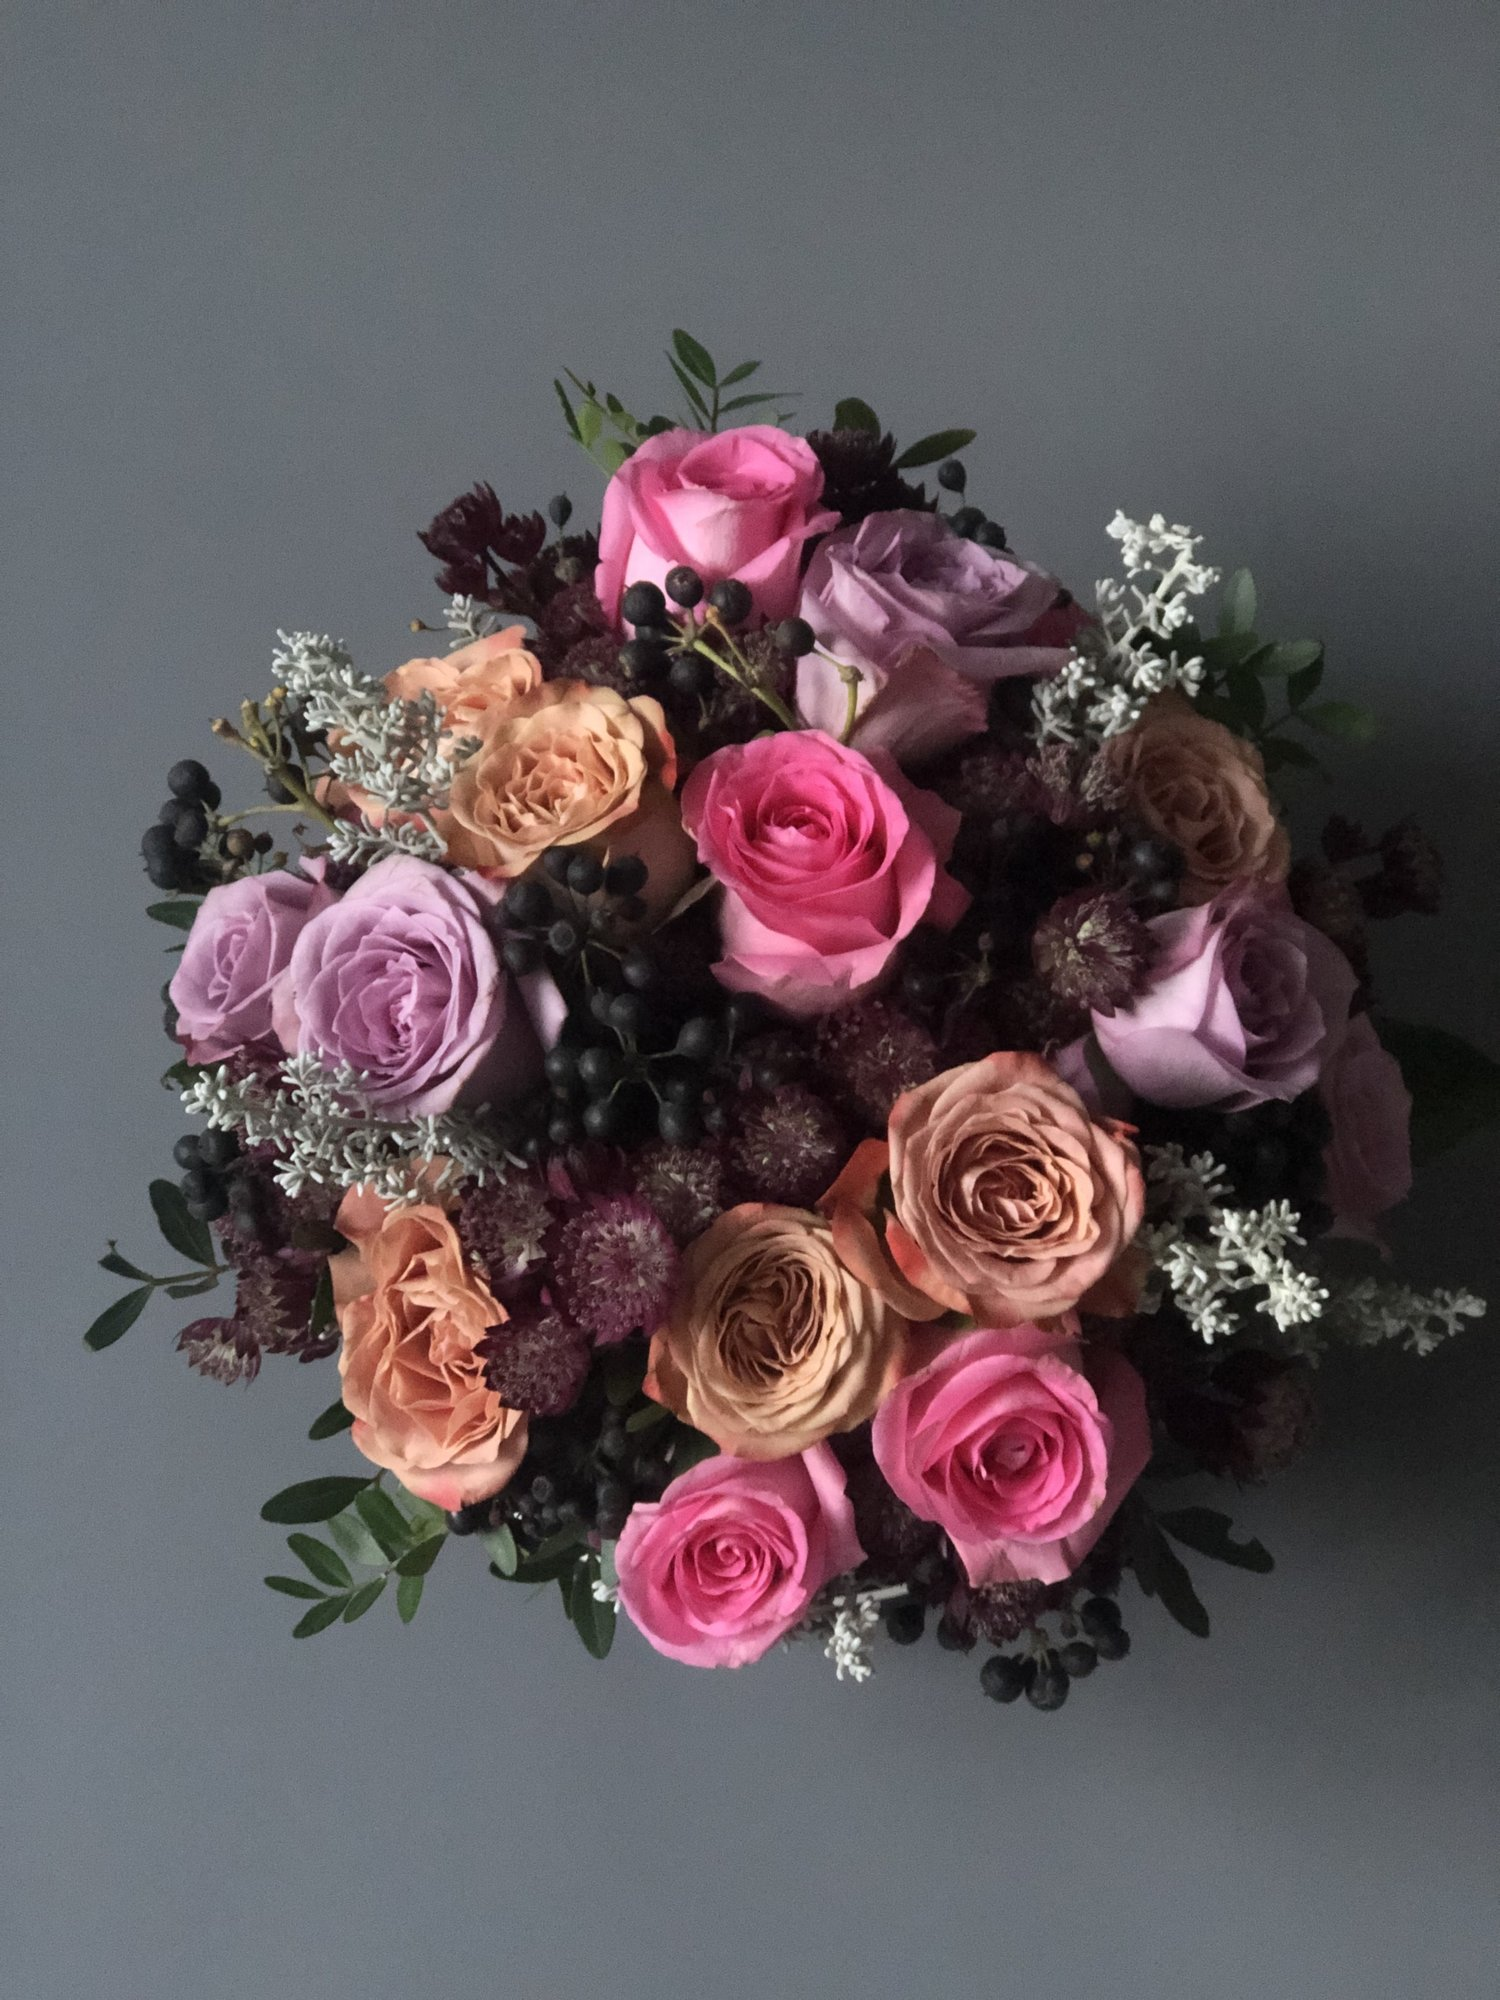 Online Flower Ordering For All Occasions I Order Flowers For